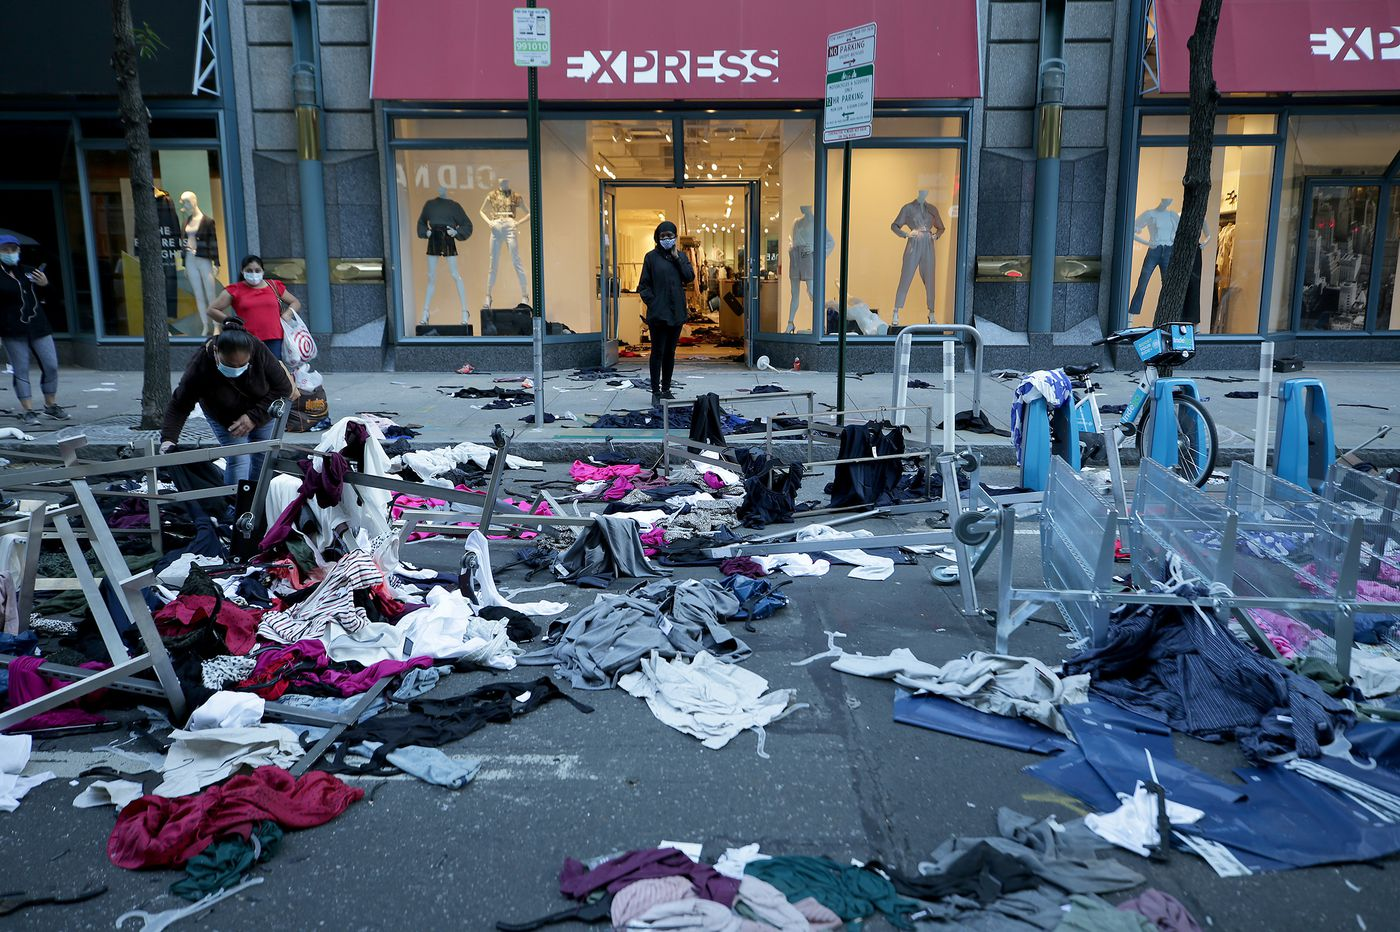 The morning after: Shattered windows, burned clothes, businesses destroyed